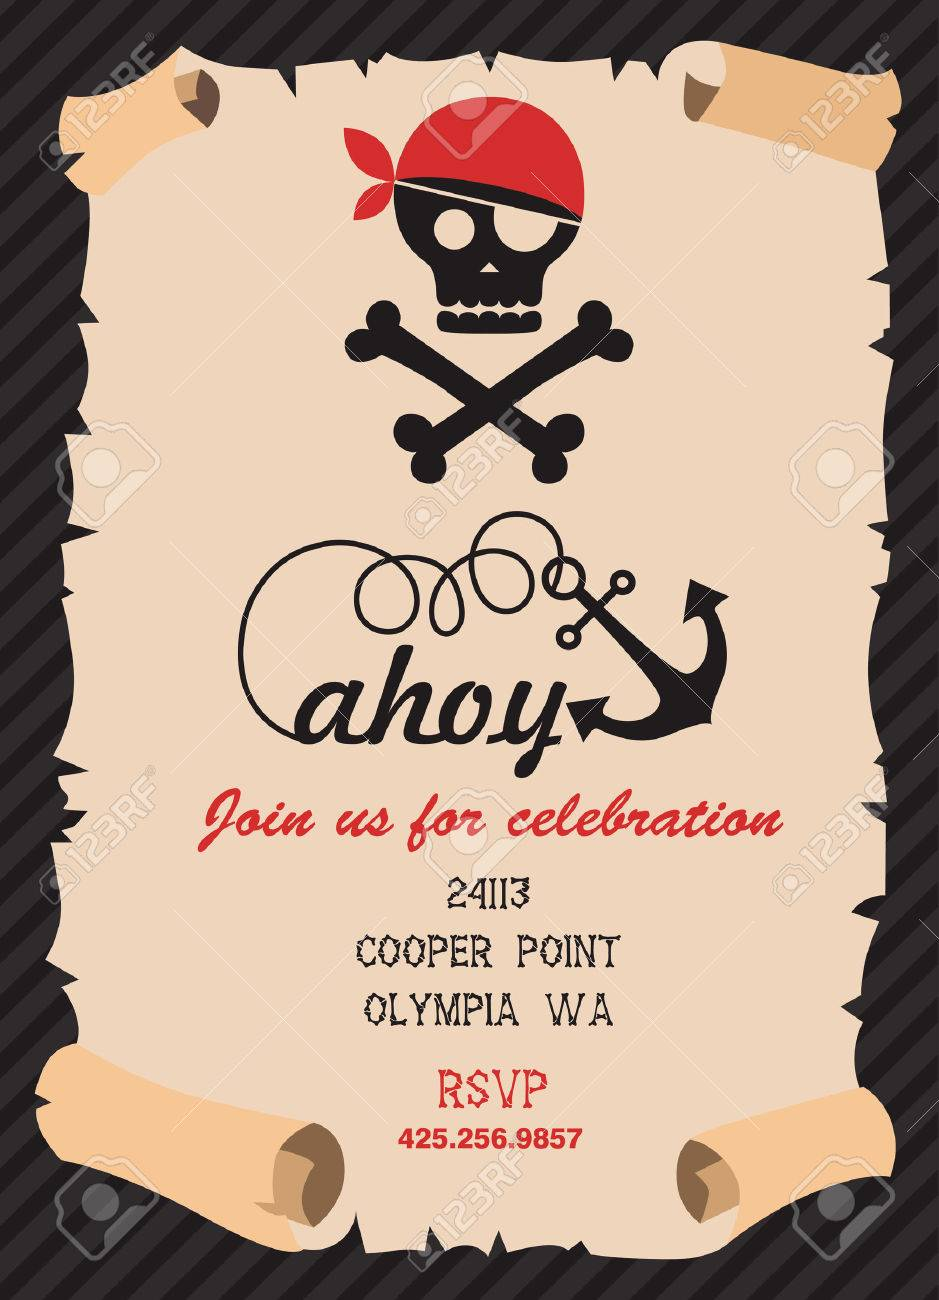 Pirate Party Invitation Card Design. Vector Illustration Royalty ...